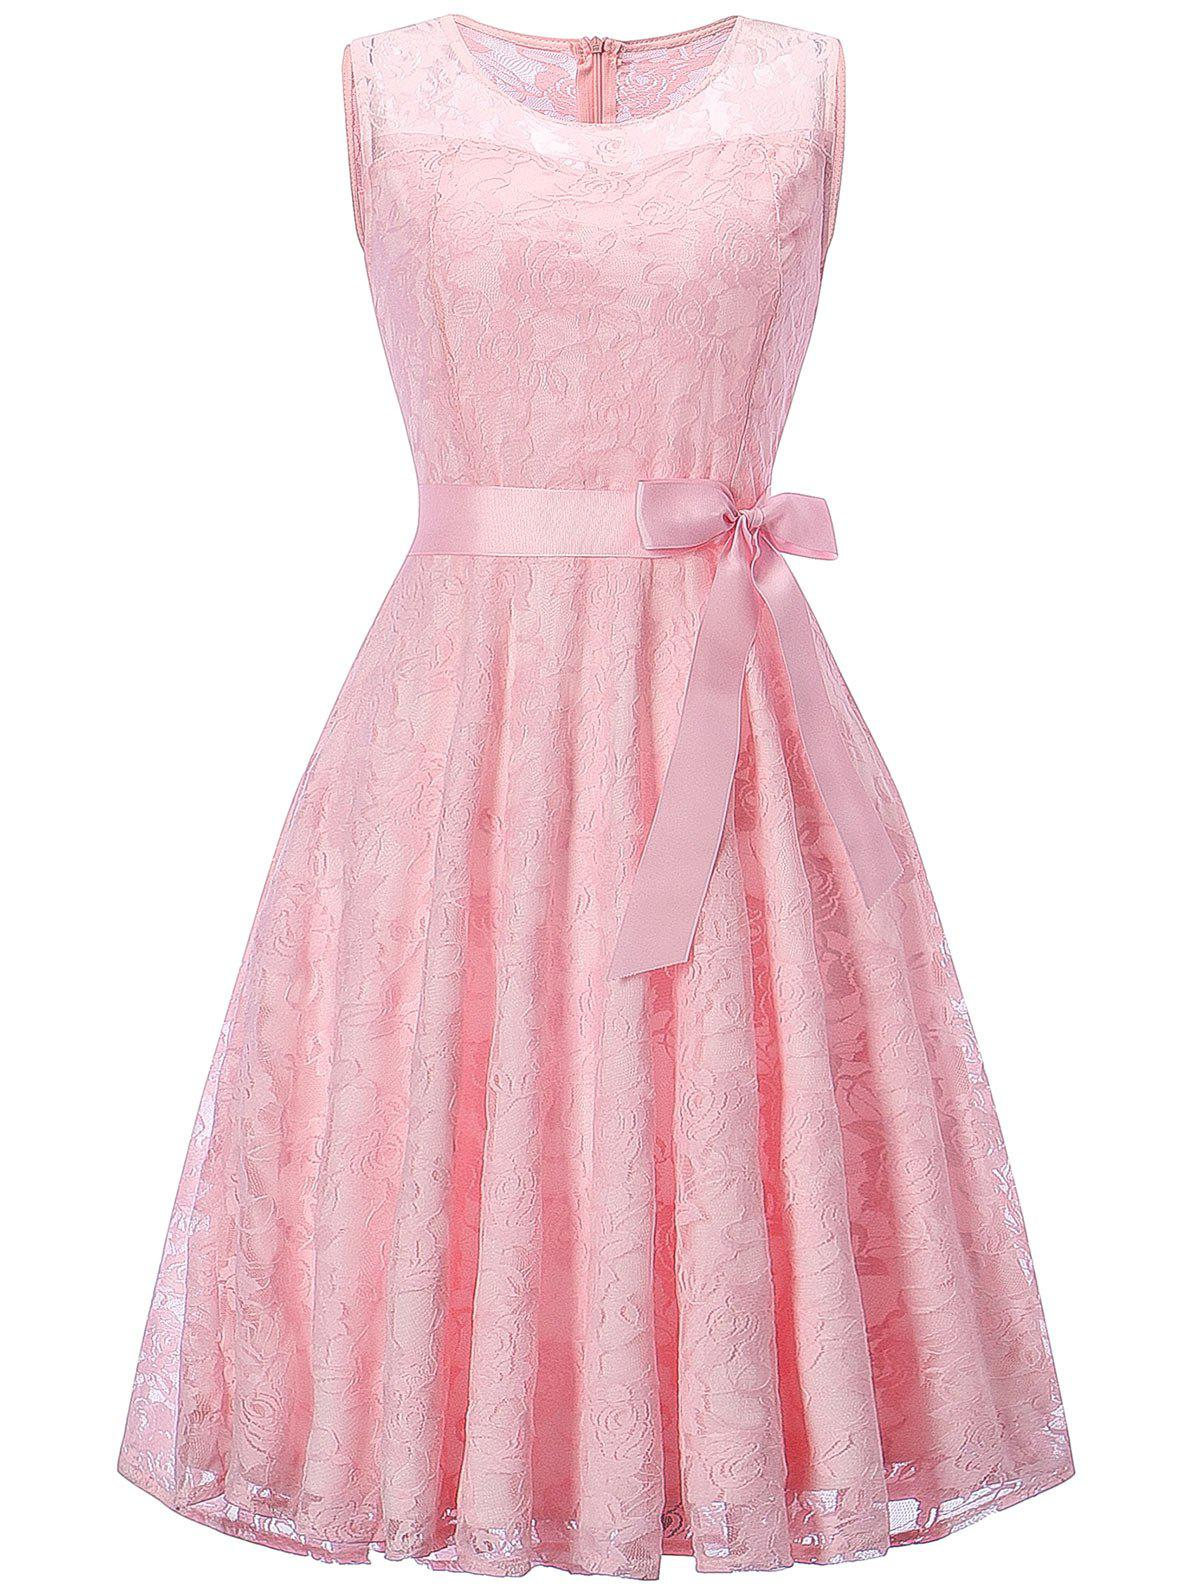 Sleeveless Swing Lace Party DressWOMEN<br><br>Size: 2XL; Color: PINK; Style: Brief; Material: Polyester; Silhouette: A-Line; Dresses Length: Knee-Length; Neckline: Round Collar; Sleeve Length: Sleeveless; Embellishment: Bowknot; Pattern Type: Floral; With Belt: Yes; Season: Fall,Spring; Weight: 0.3500kg; Package Contents: 1 x Dress  1 x Belt; Occasion: Bridesmaid,Cocktail &amp; Party,Evening,Night Out,Pageant Dresses,Party;